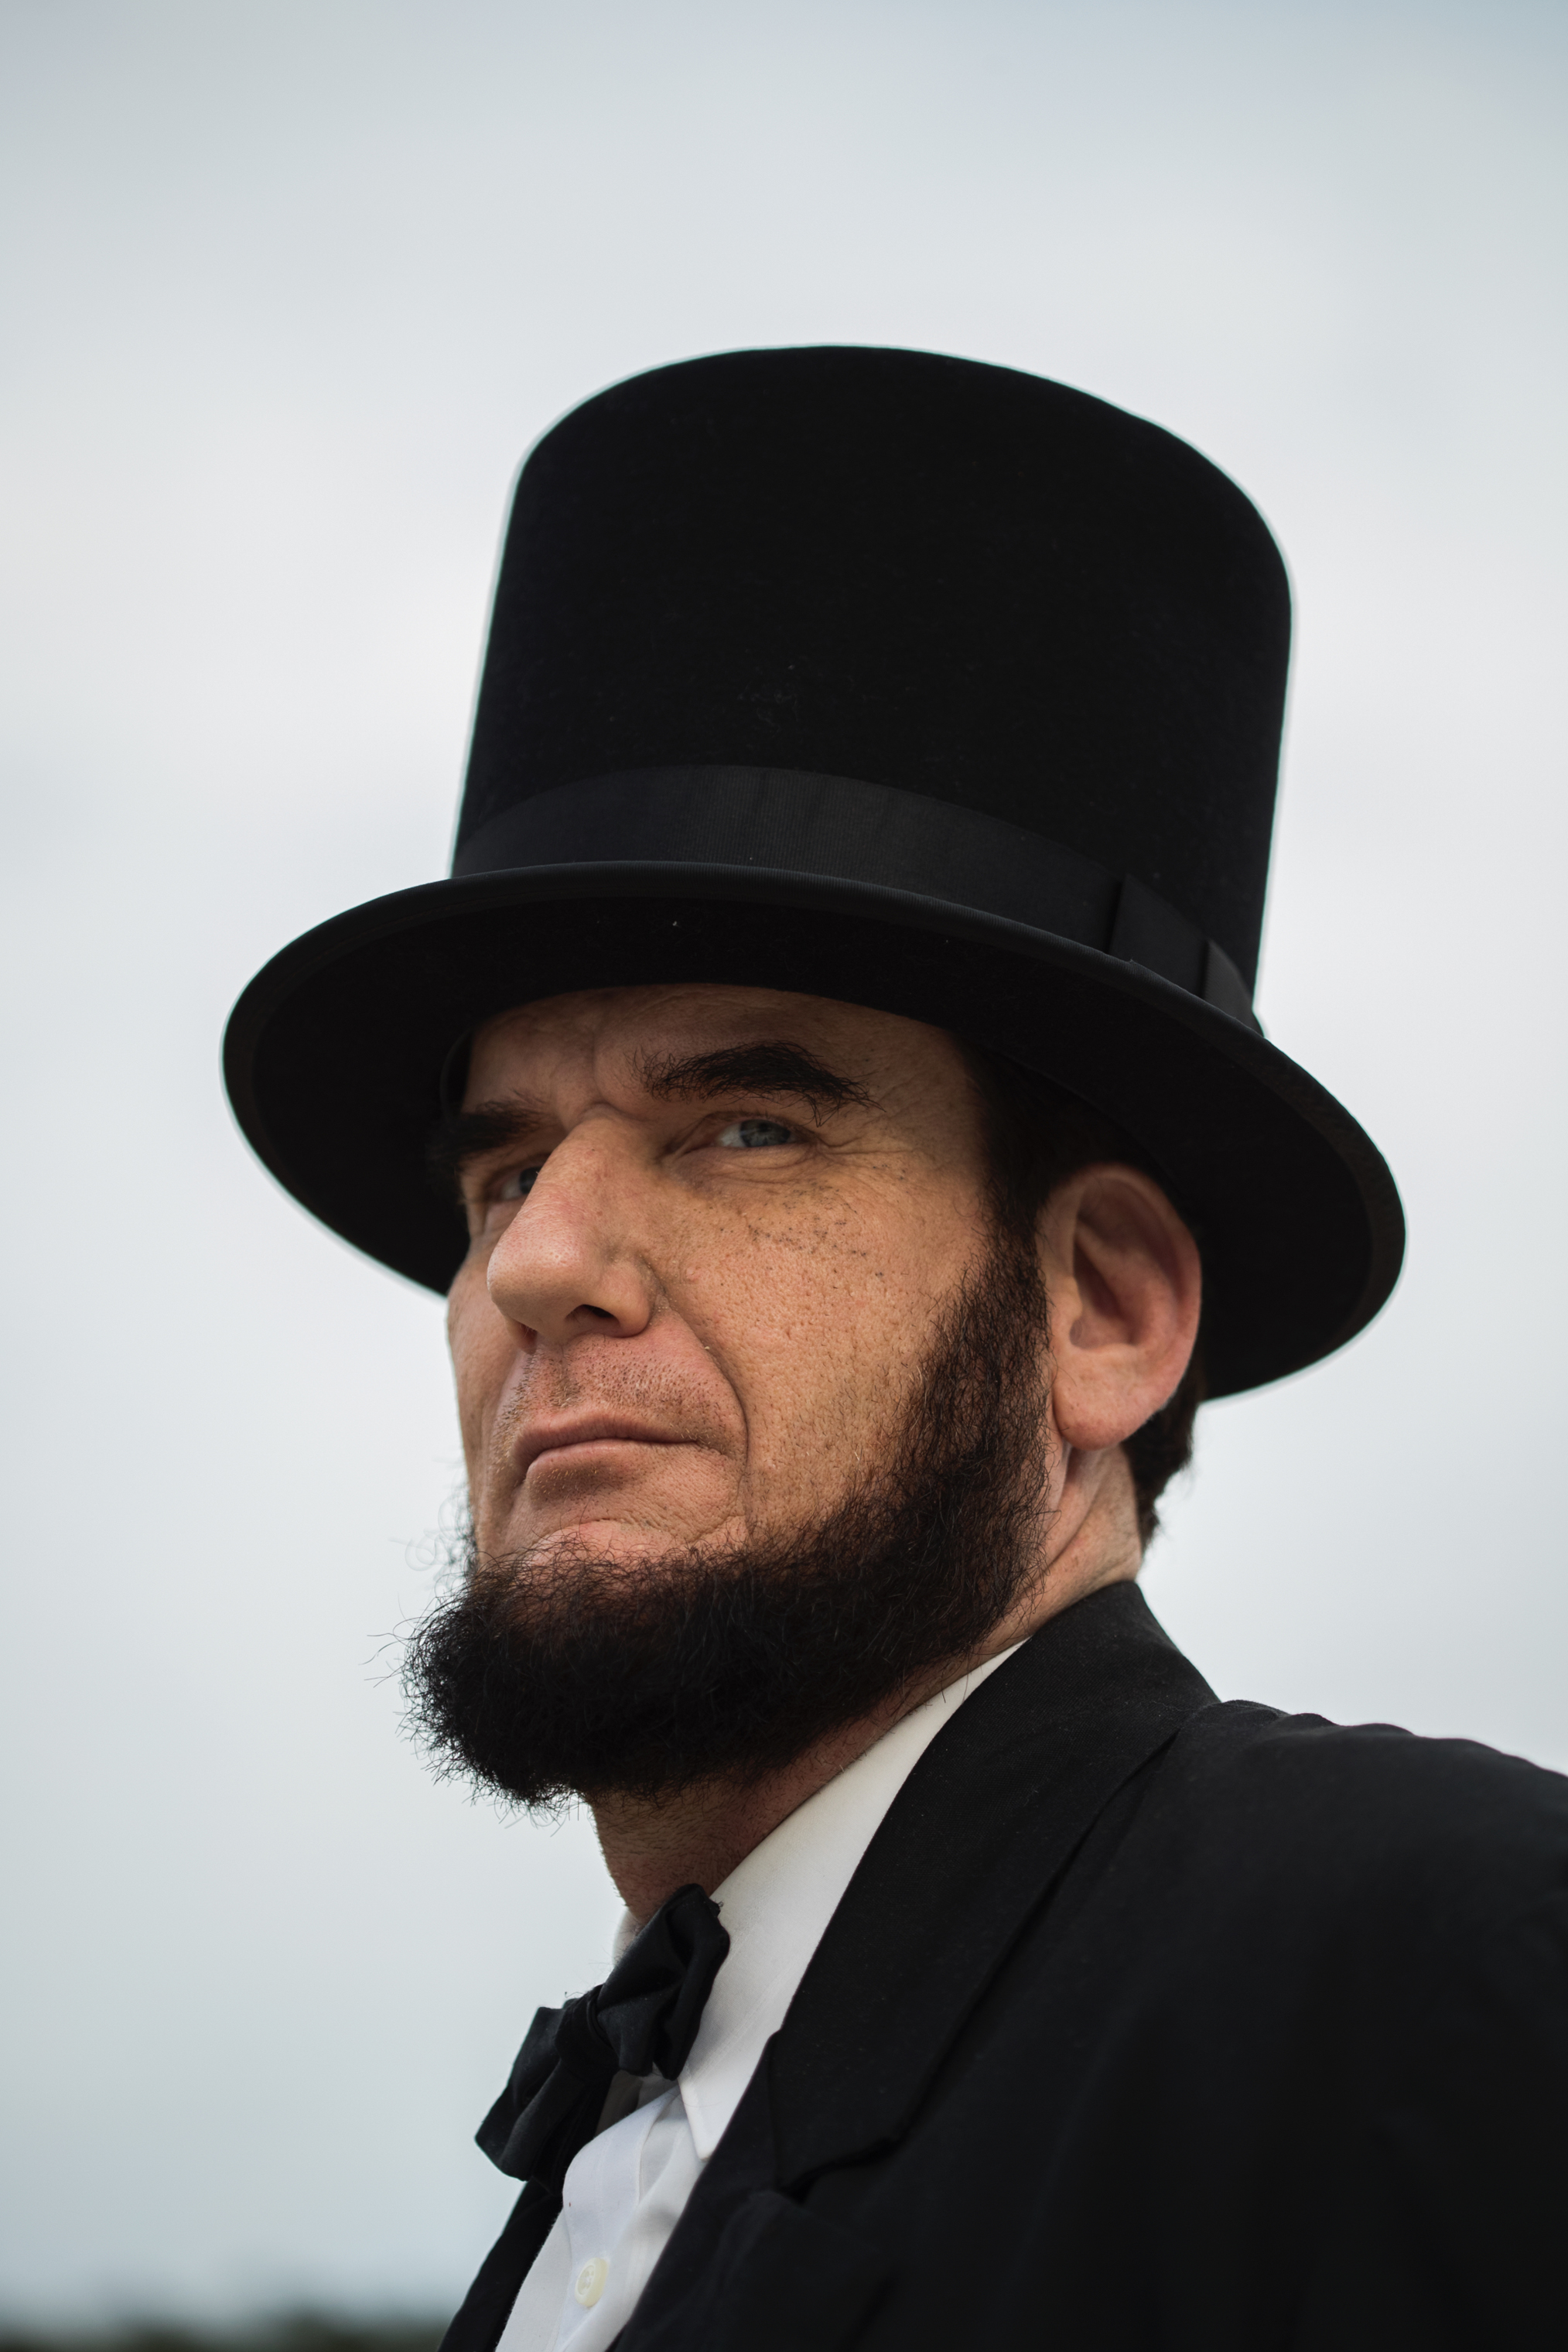 Lincoln impersonators